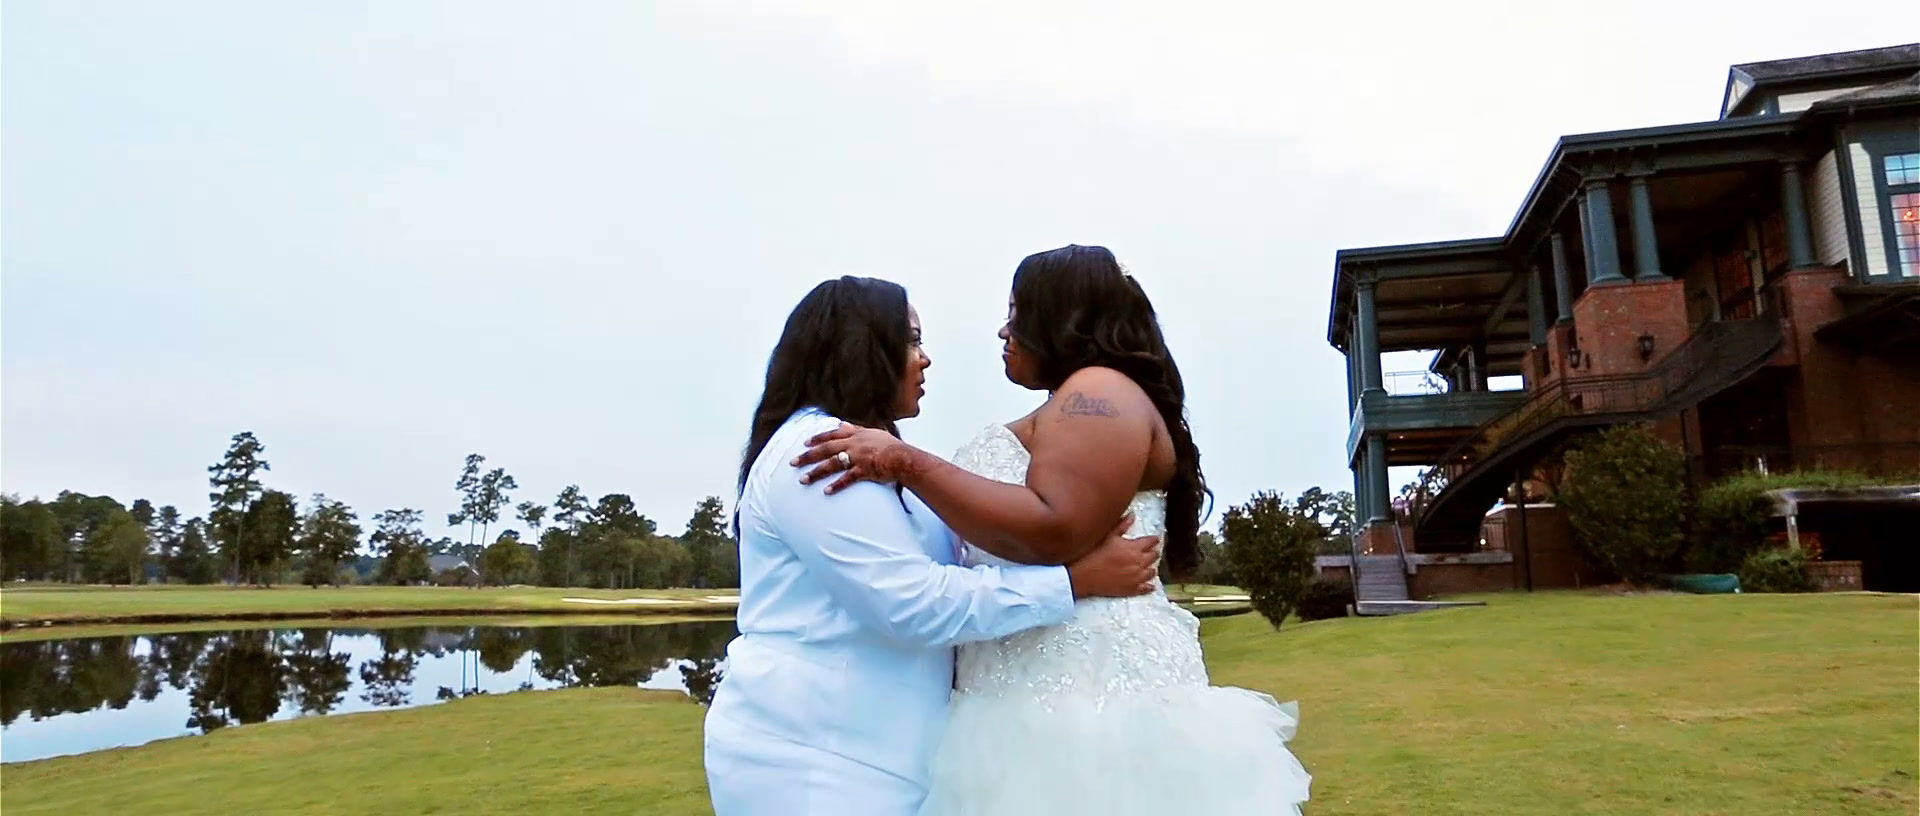 Chandra + LeighAnna | Wallace, North Carolina | River Landing